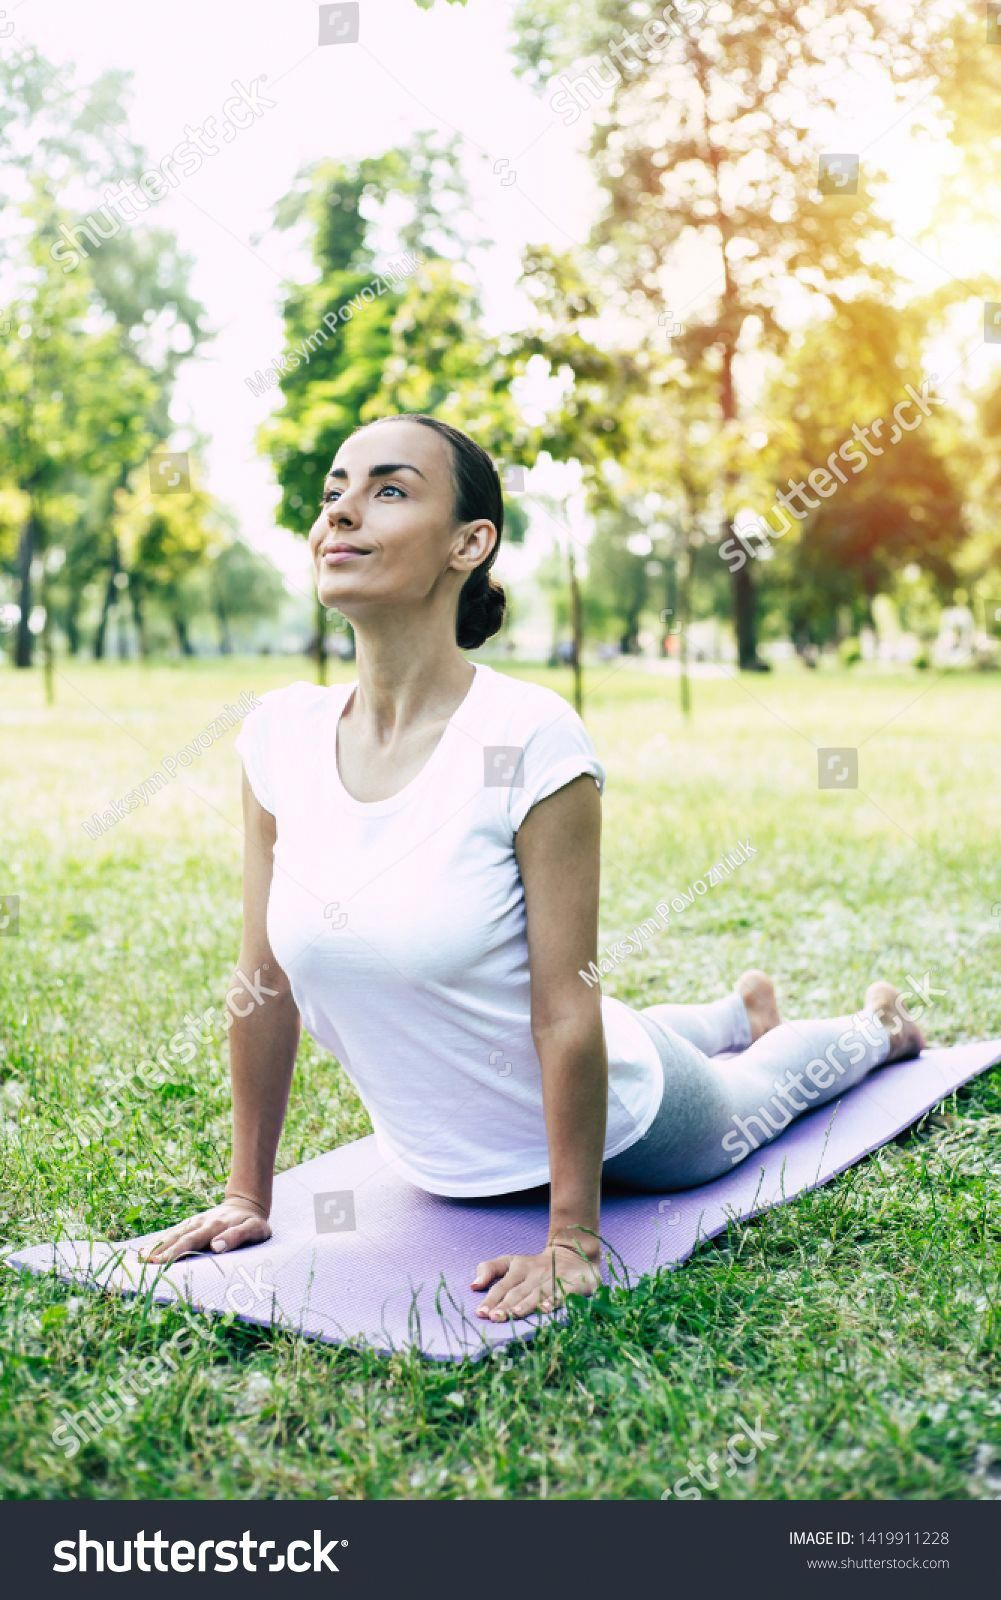 Slim fitness woman on a yoga mat to relax outdoor in park #Sponsored , #AD, #woman#yoga#Slim#fitness